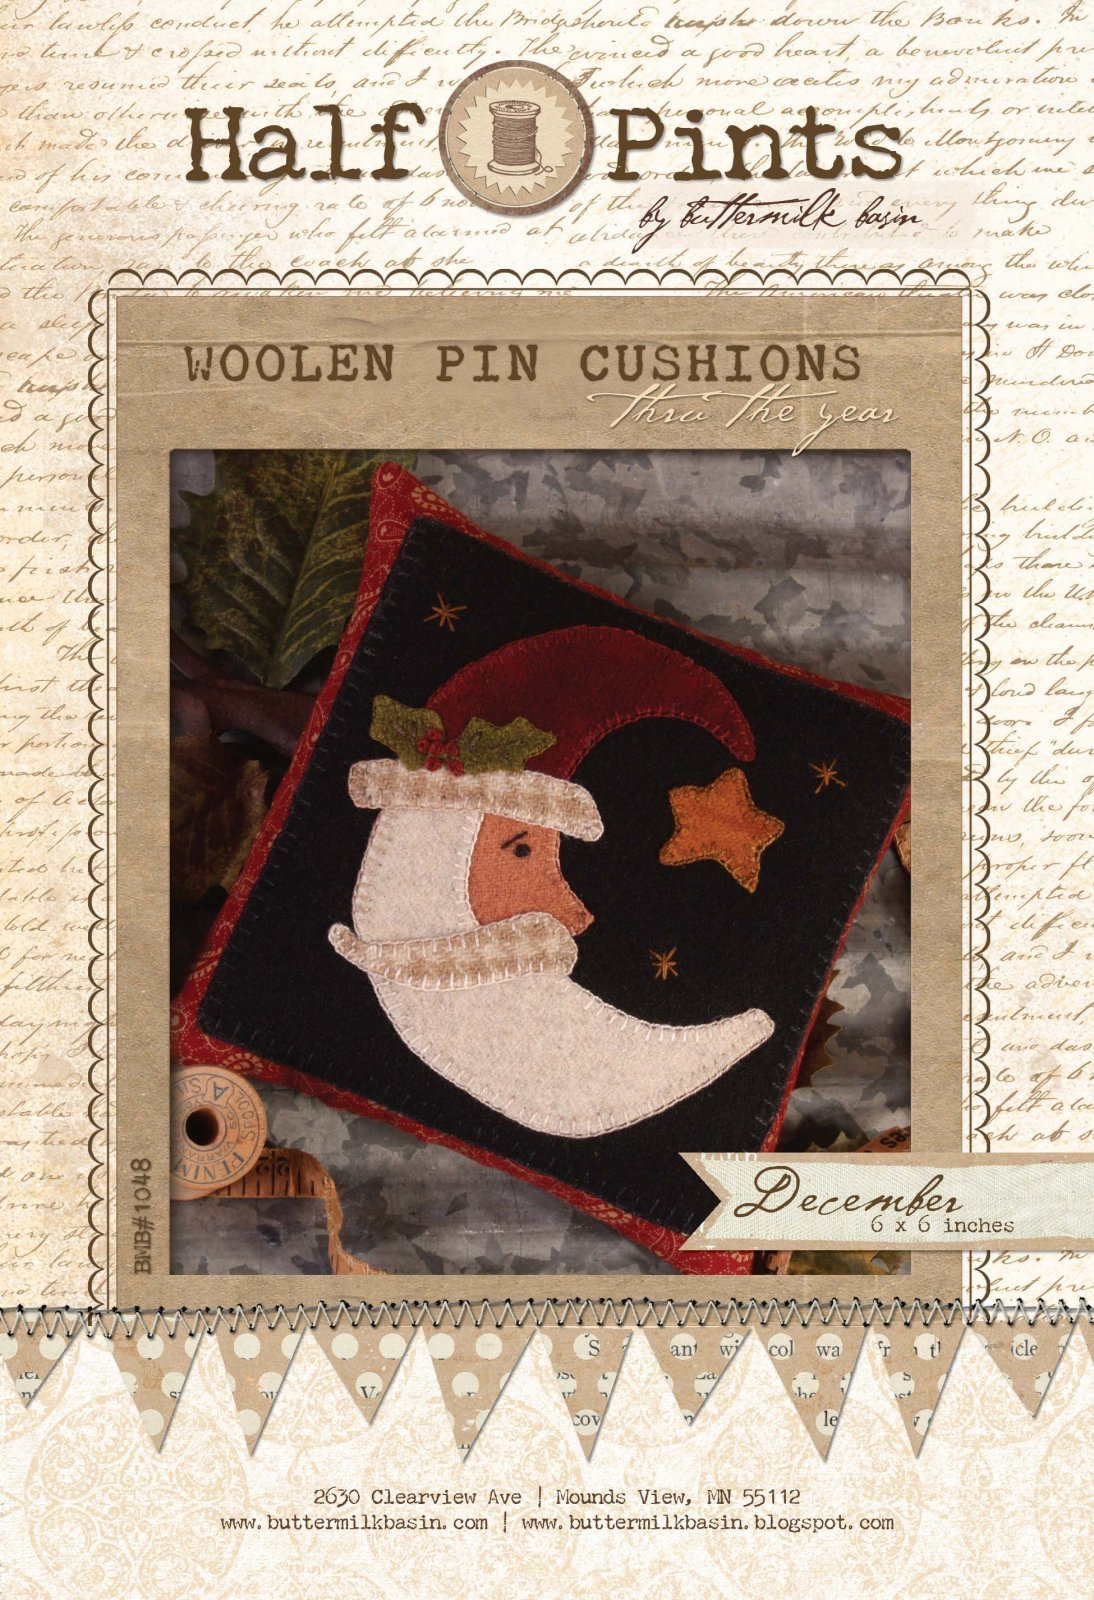 Woolen Pin Cushion - December